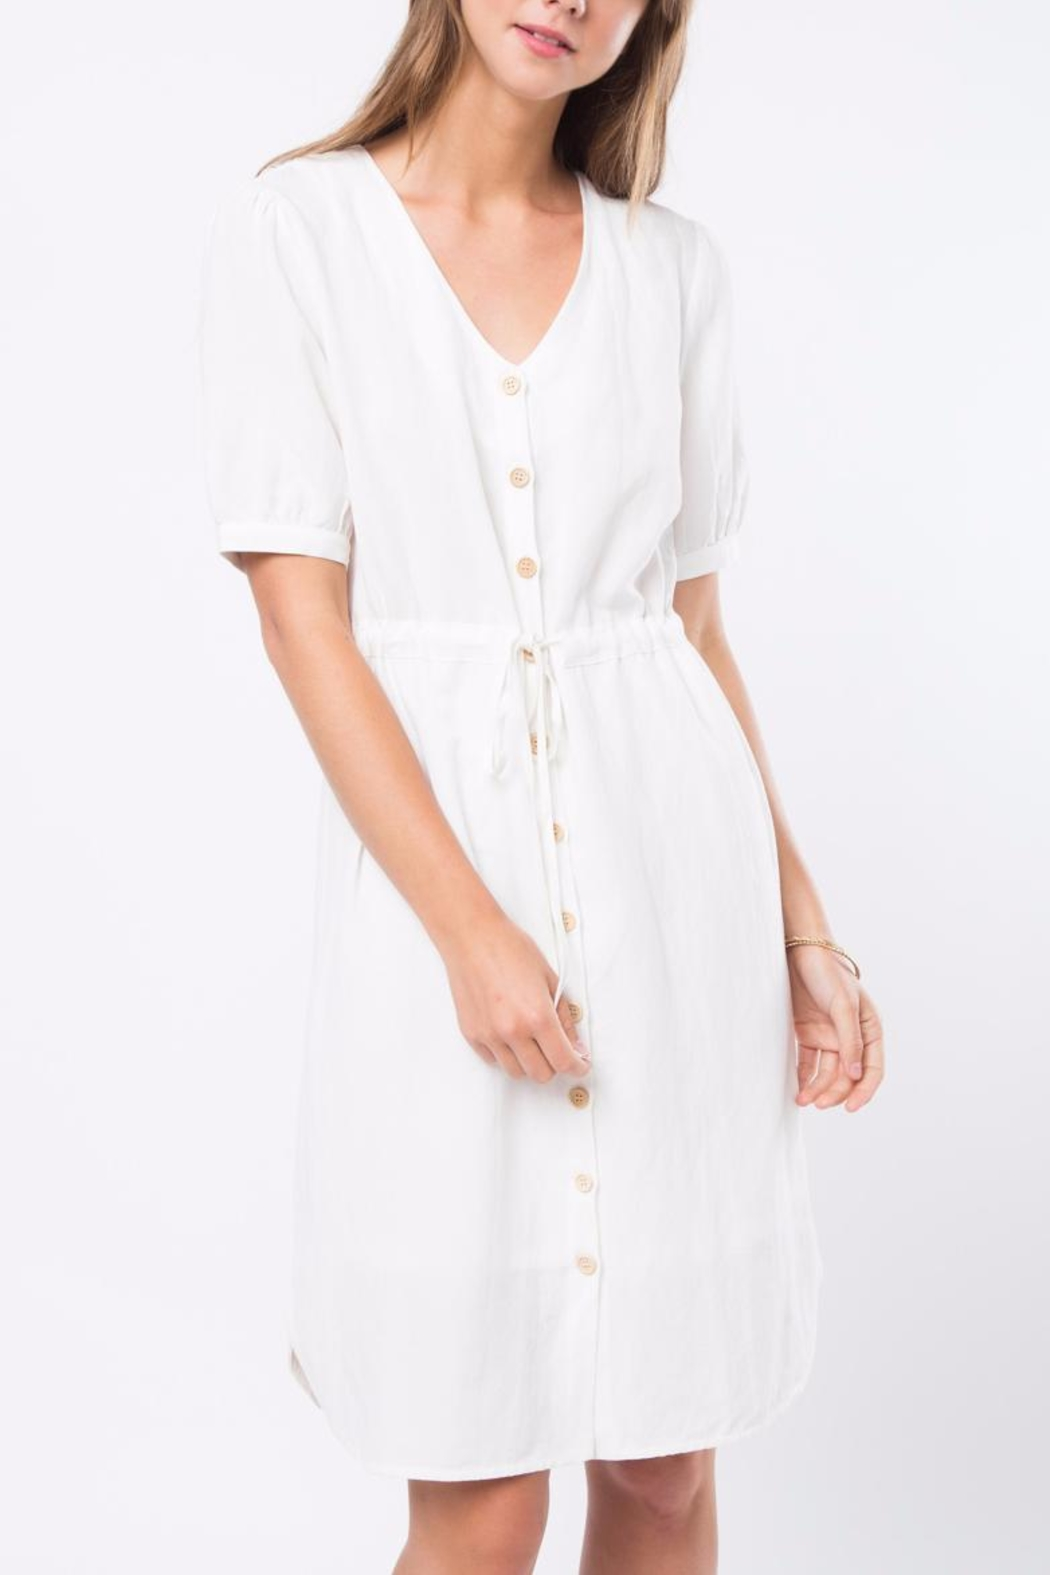 Movint Cara Blanc Dress - Main Image